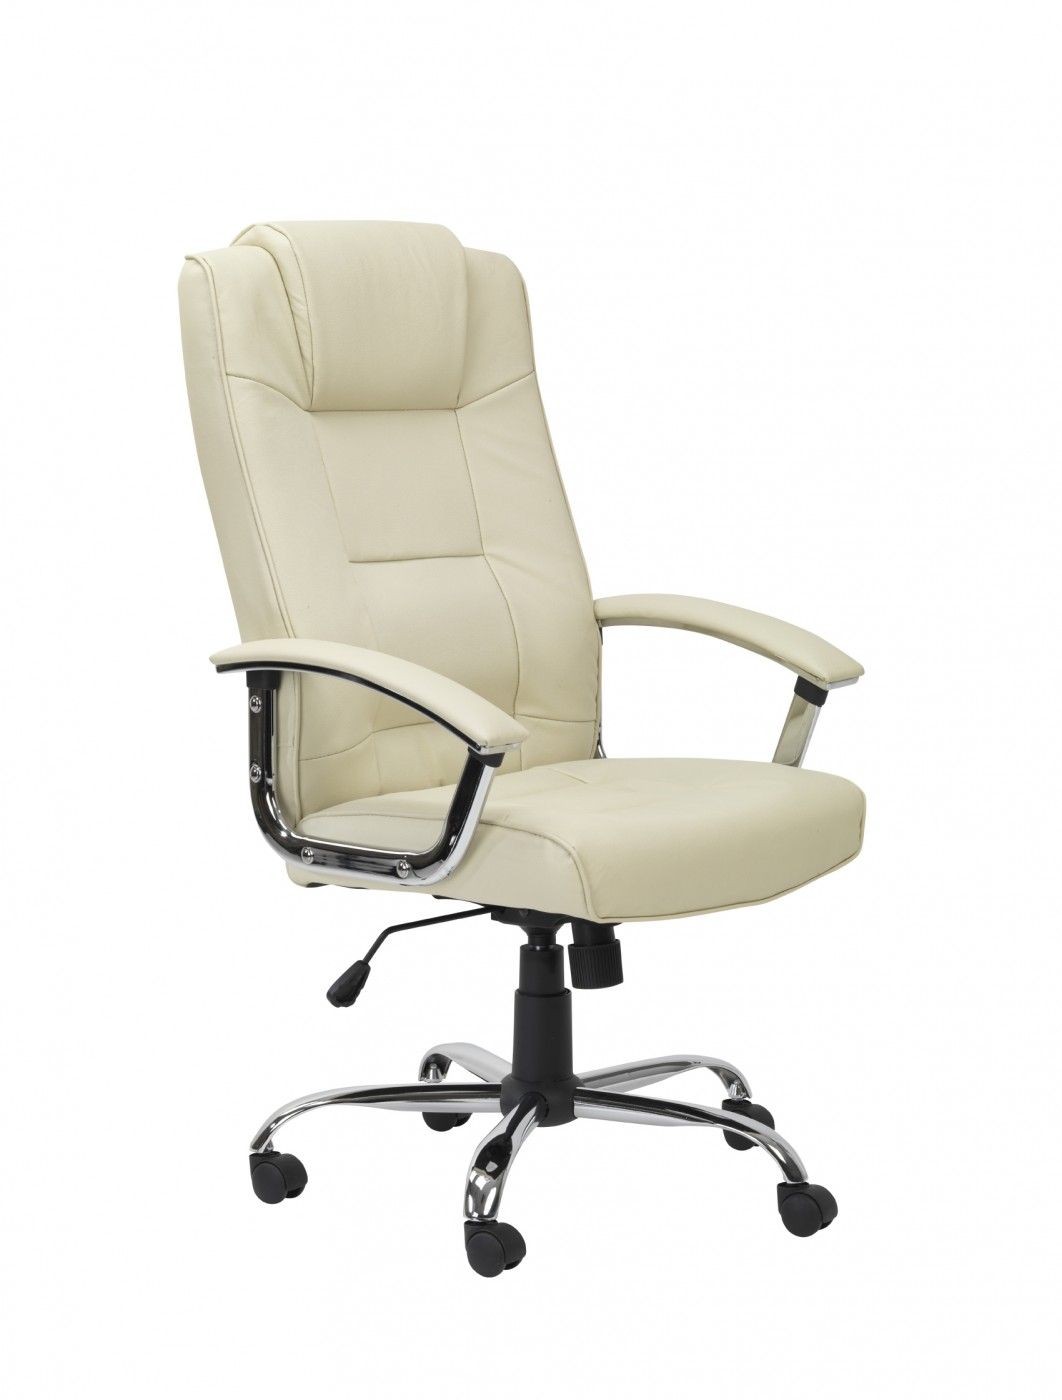 Executive Office Furniture: Executive Chair AOC4201A-L